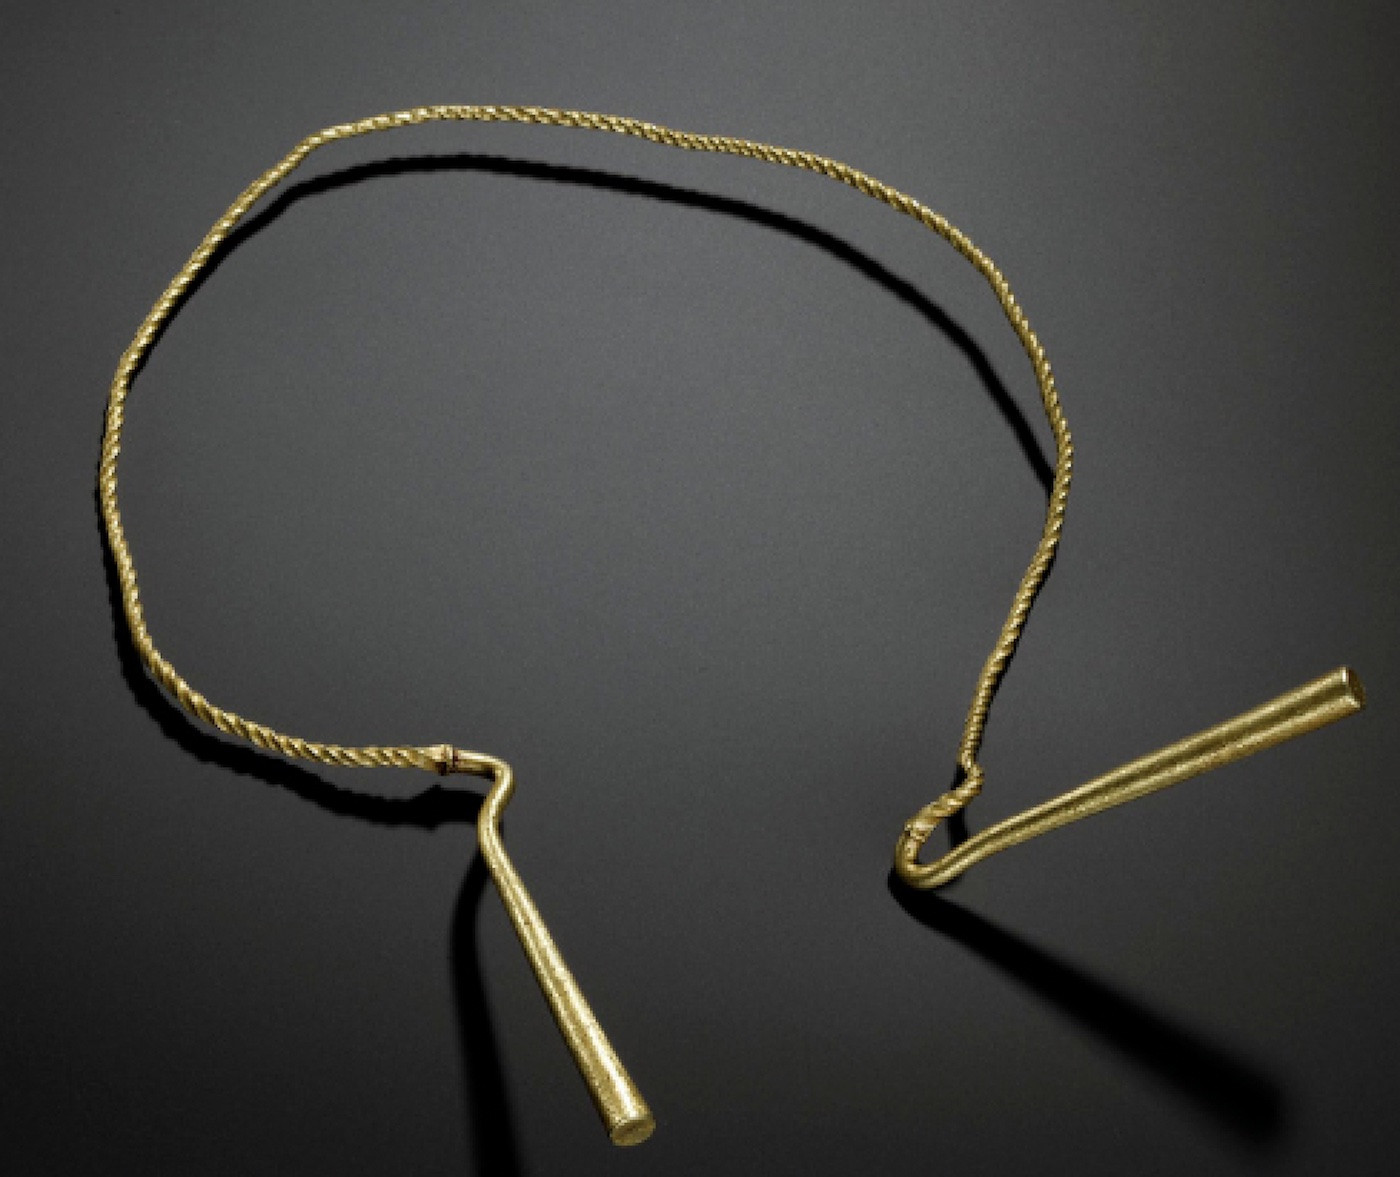 The Minch Torc